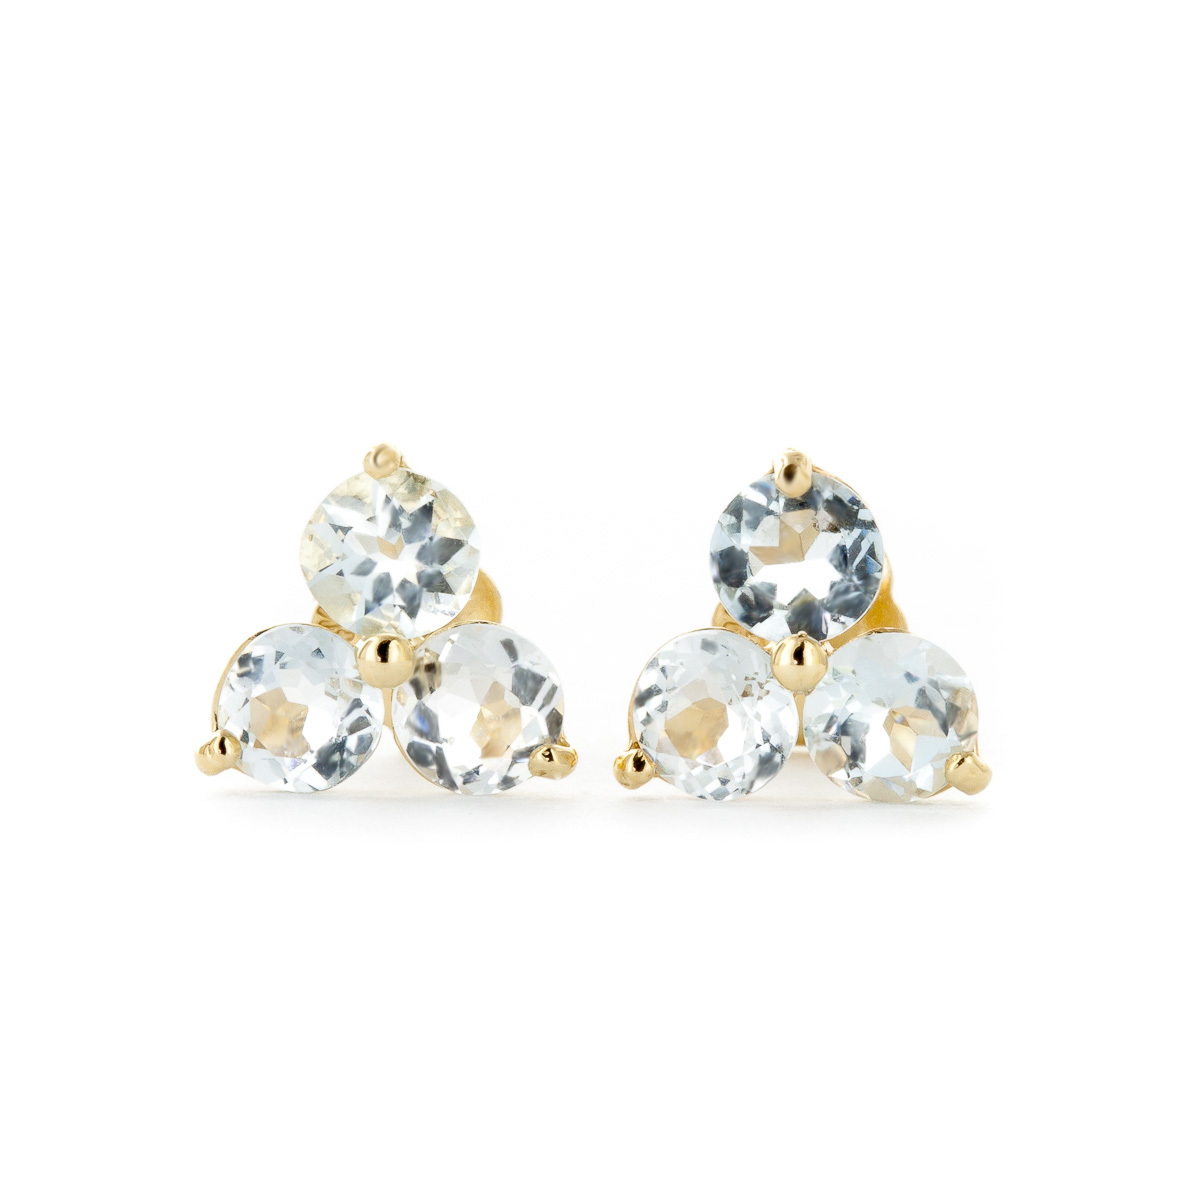 Aquamarine Trinity Stud Earrings 1.5 ctw in 9ct Gold